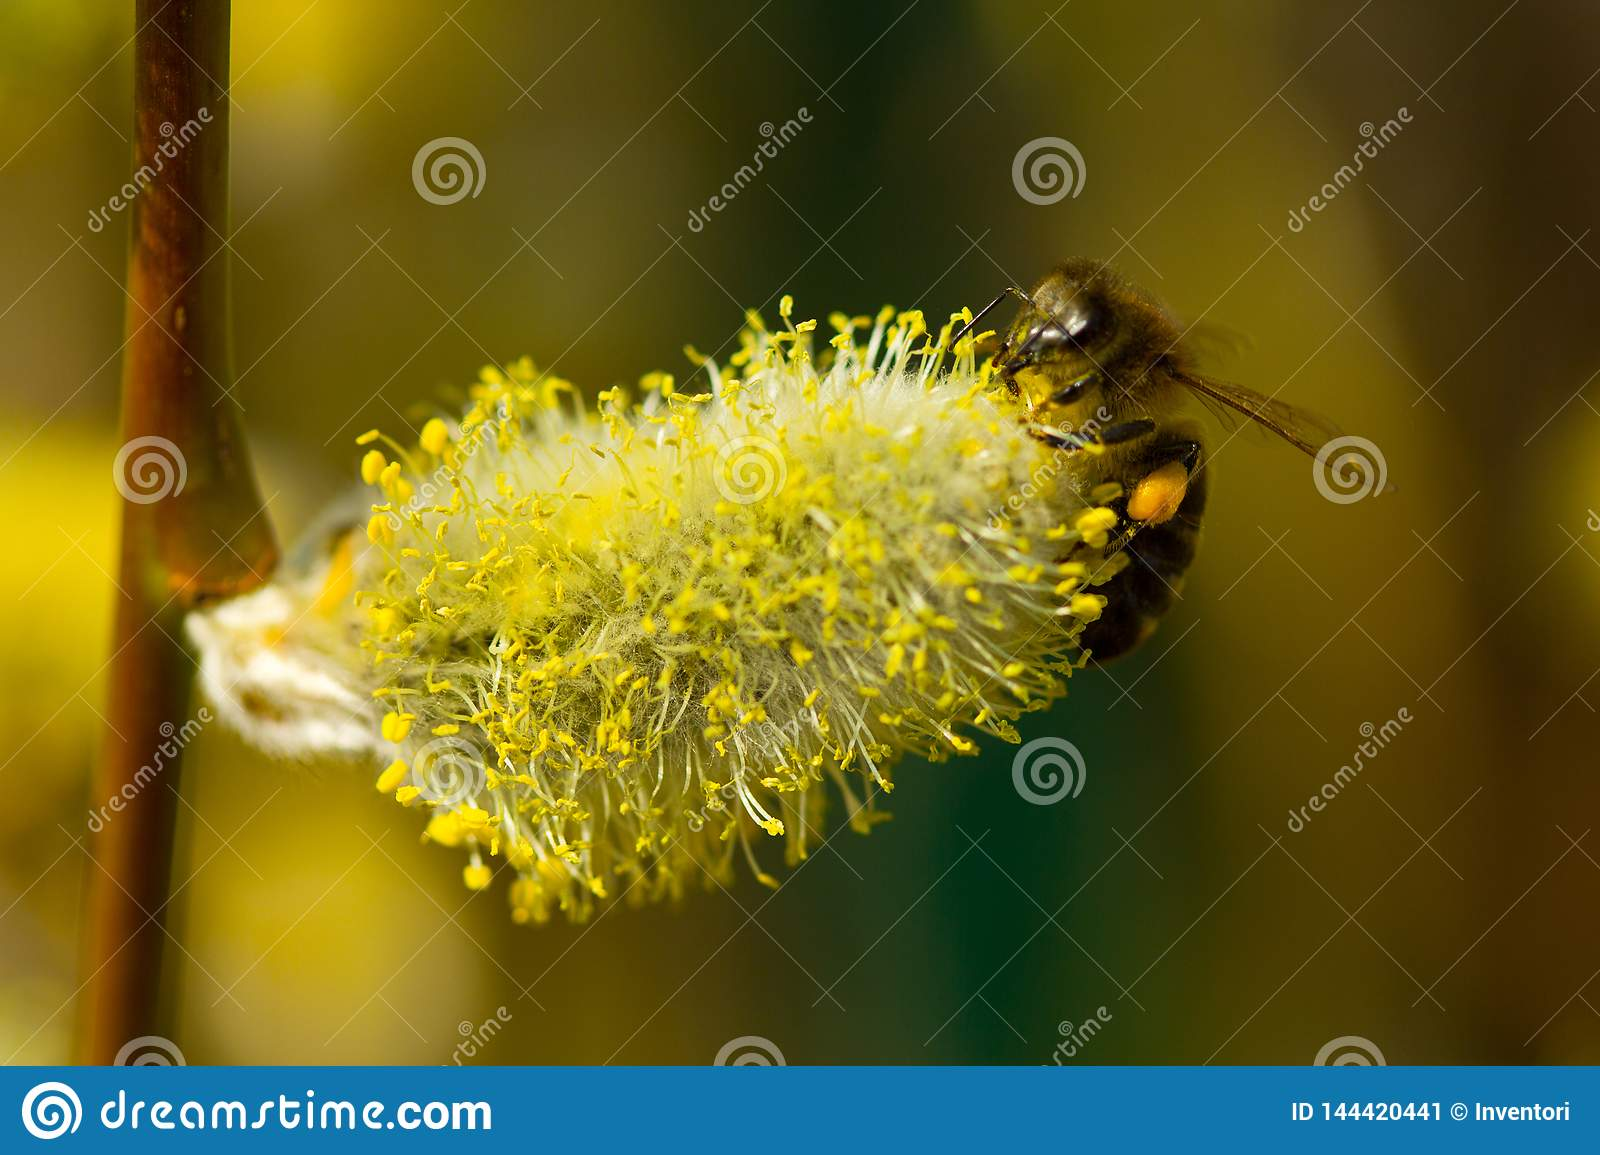 Bees collect nectar from flowering willow